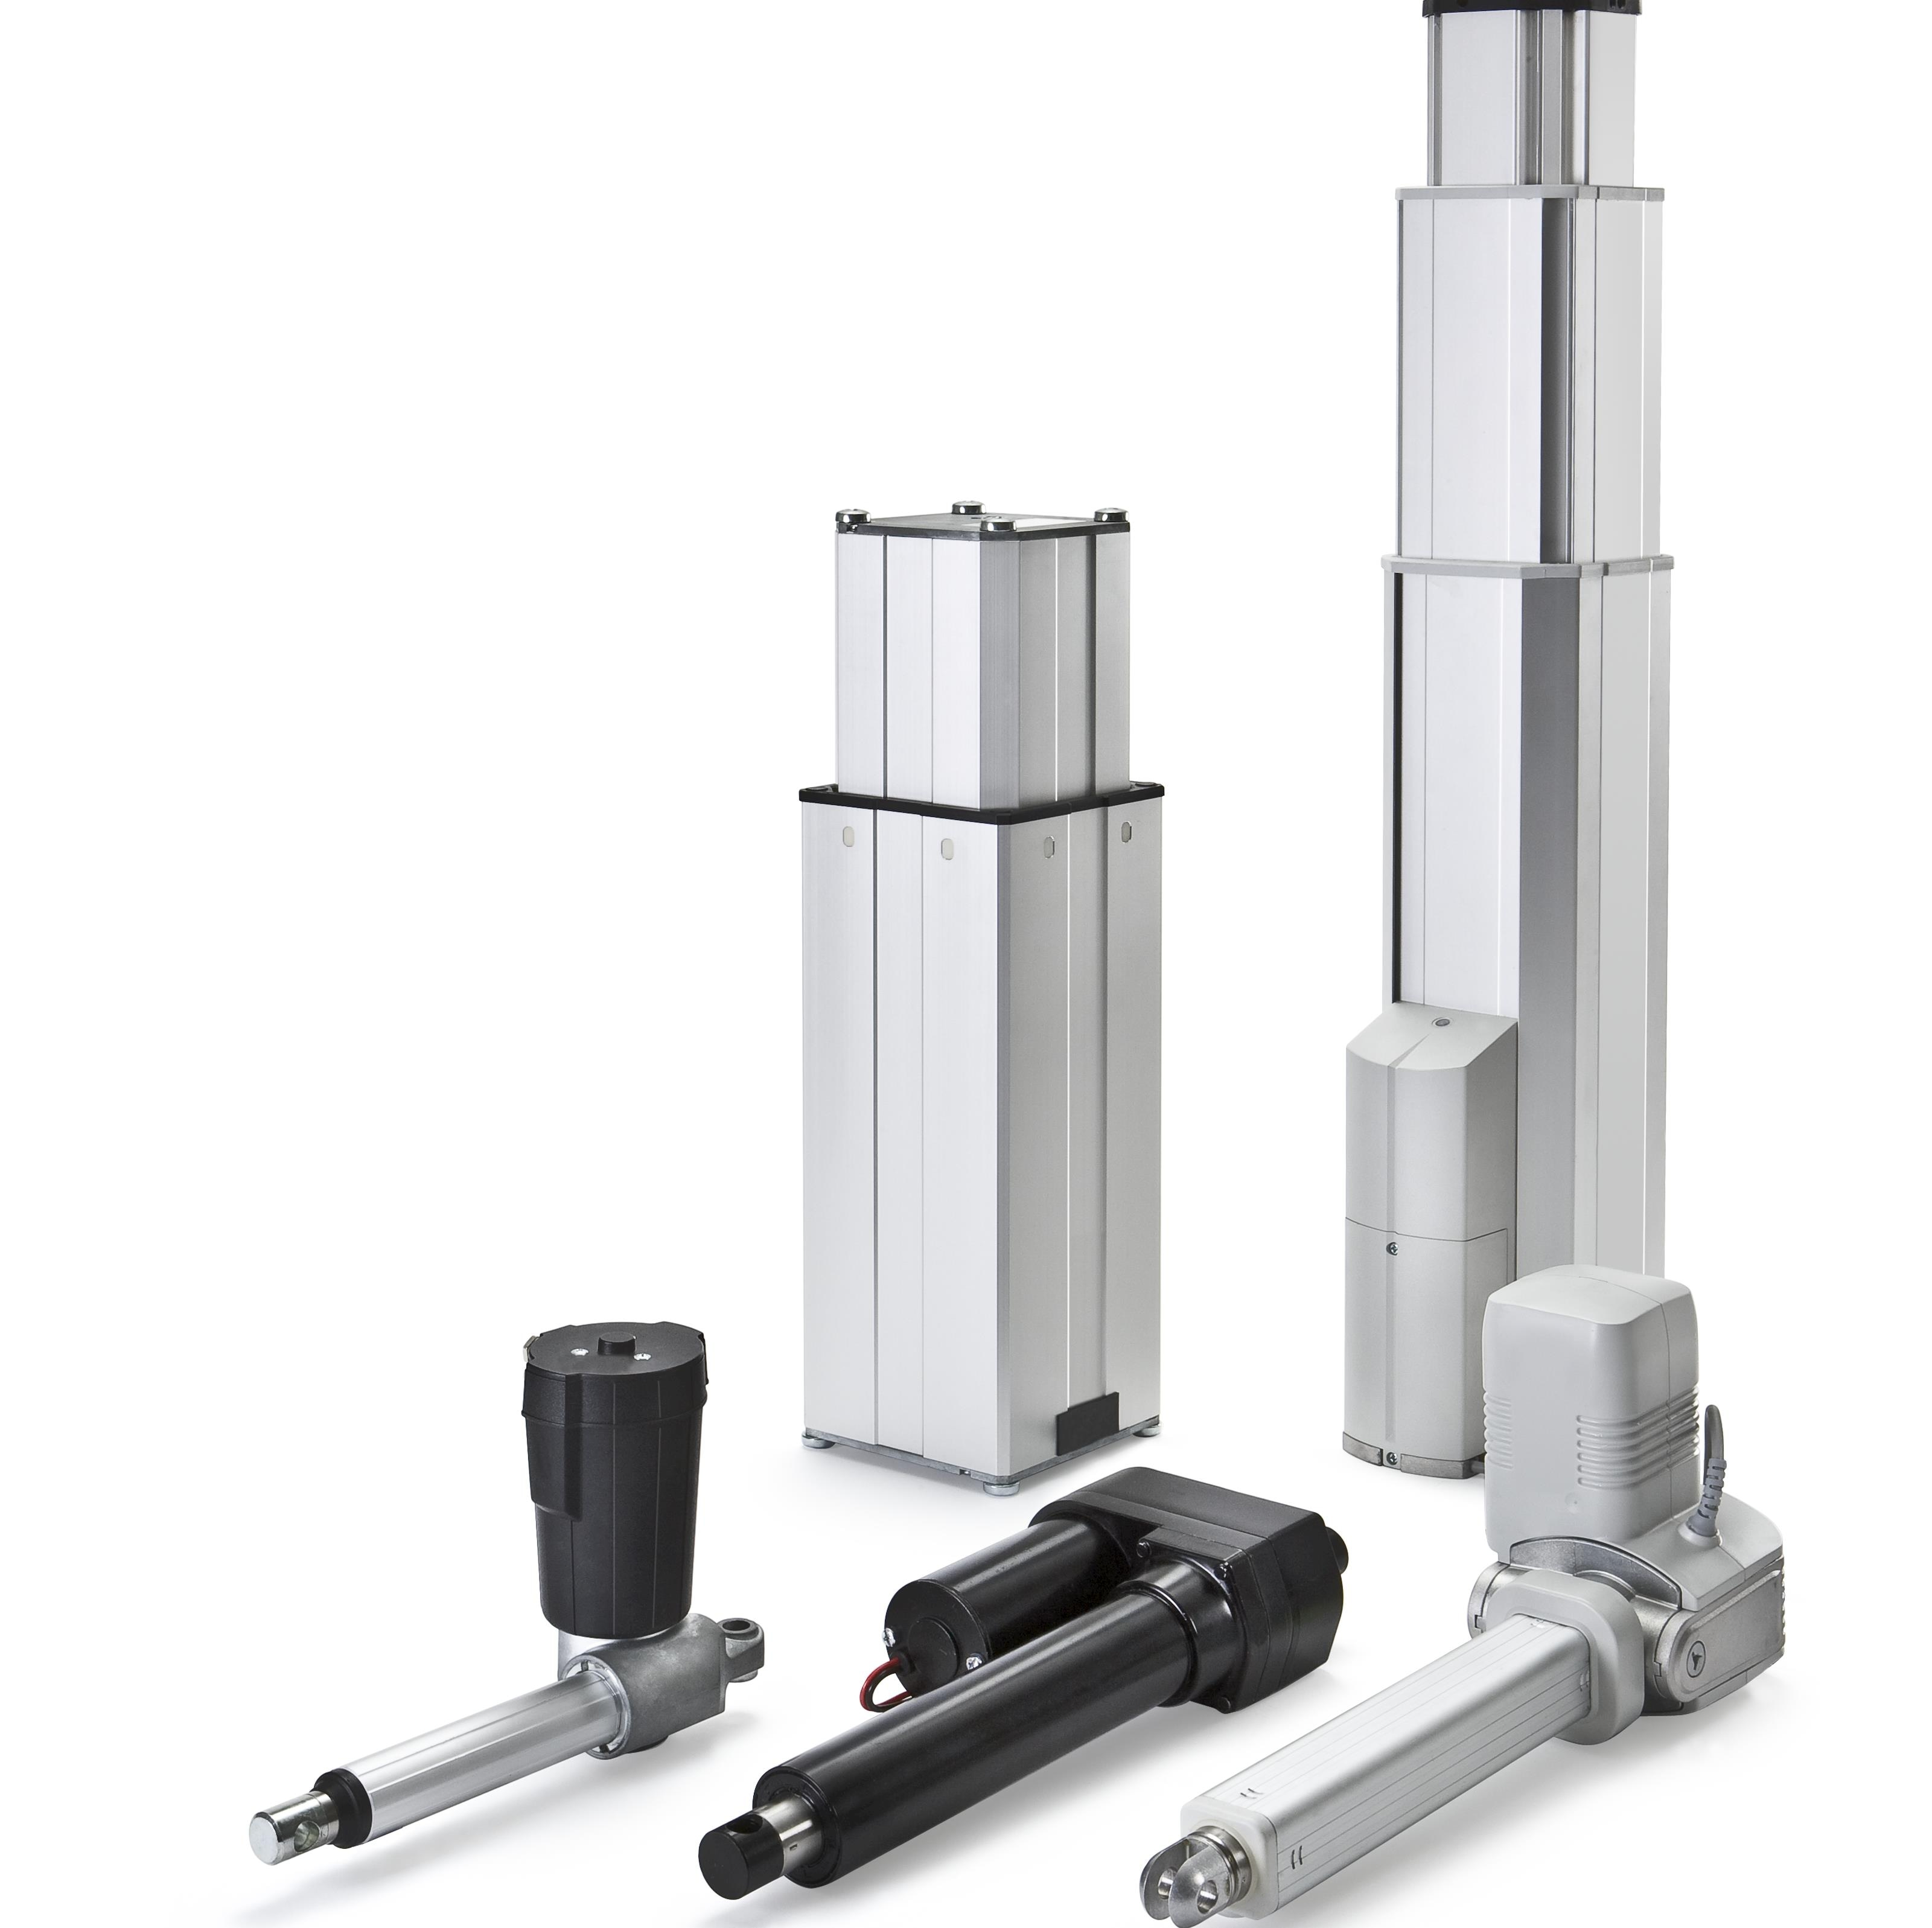 SKF Actuation System range overview